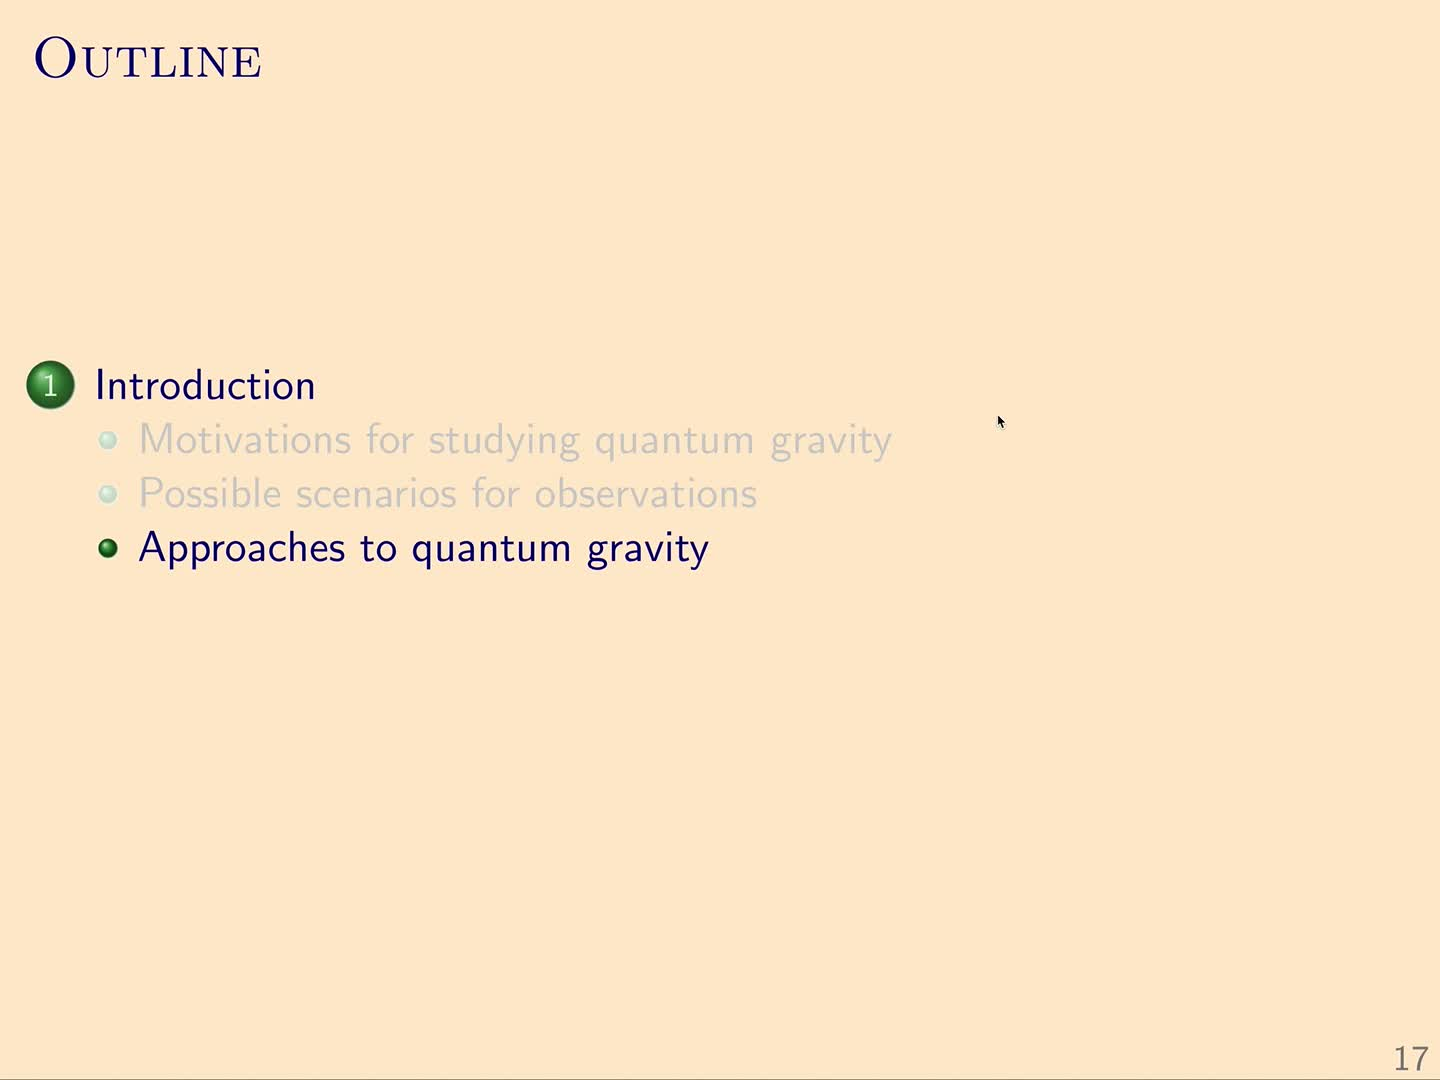 QG I: 1.3 - Approaches to quantum gravity